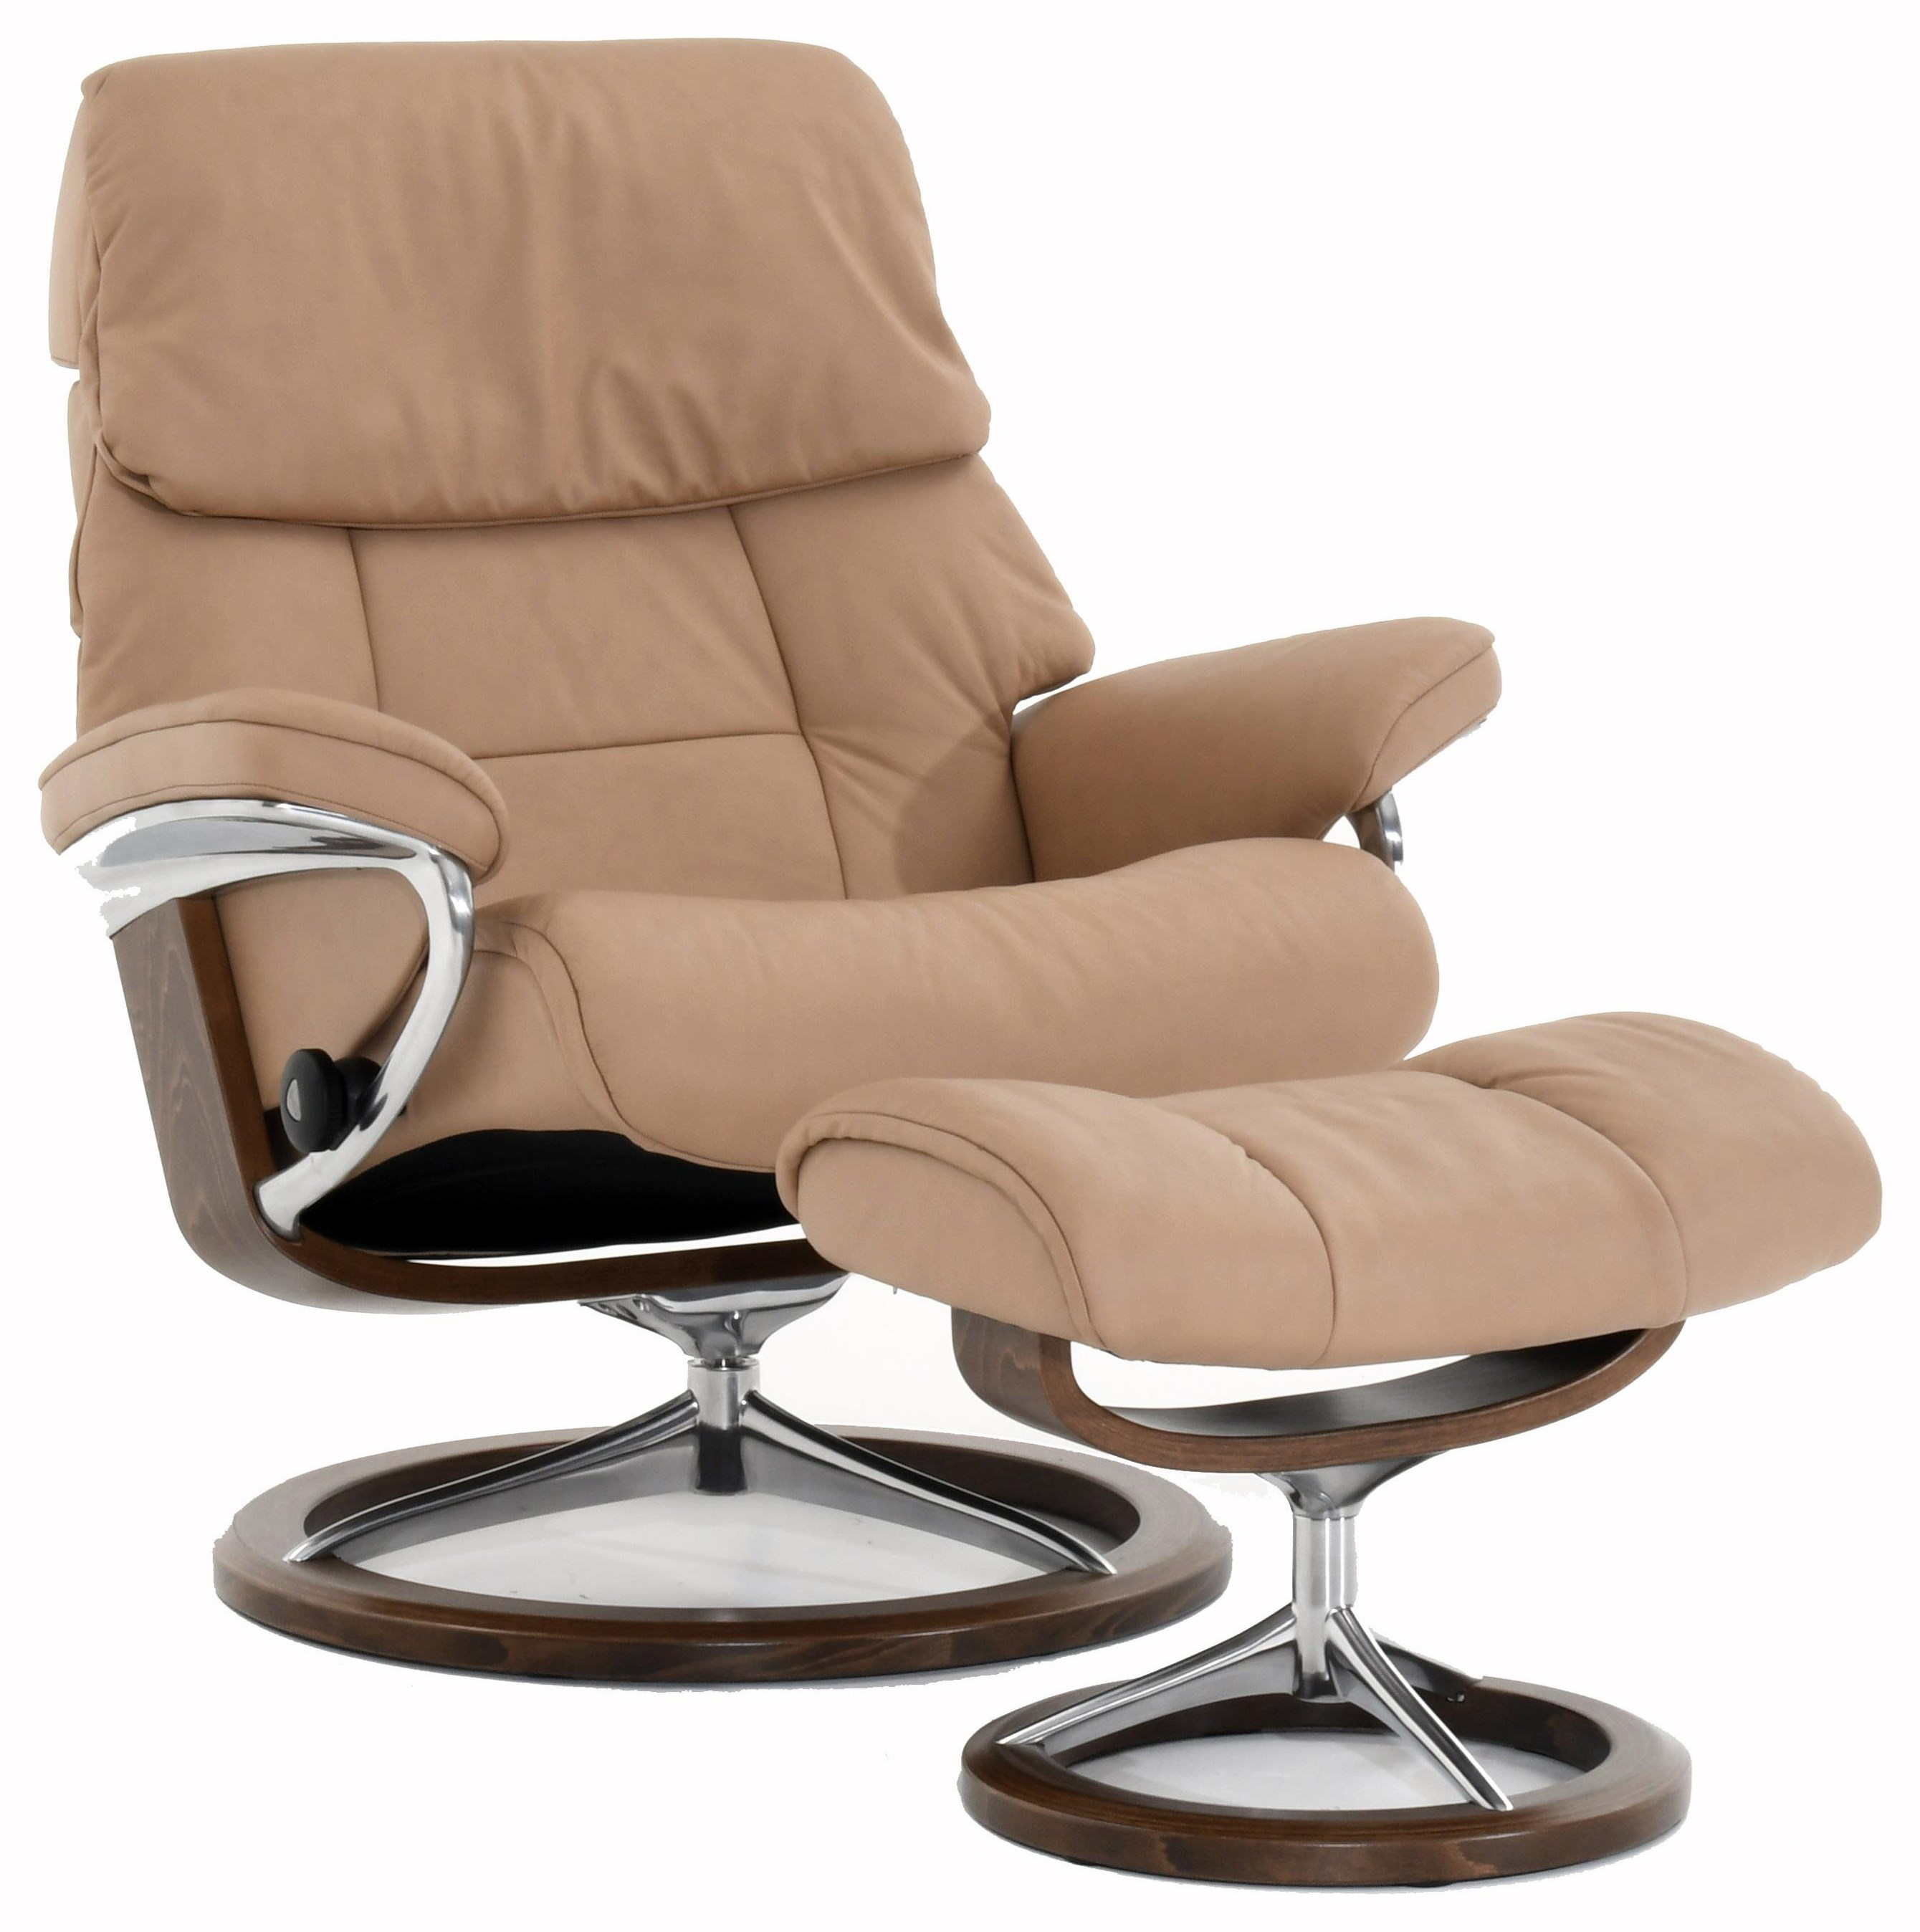 Stressless Ruby Large Signature Chair by Stressless at Baer's Furniture